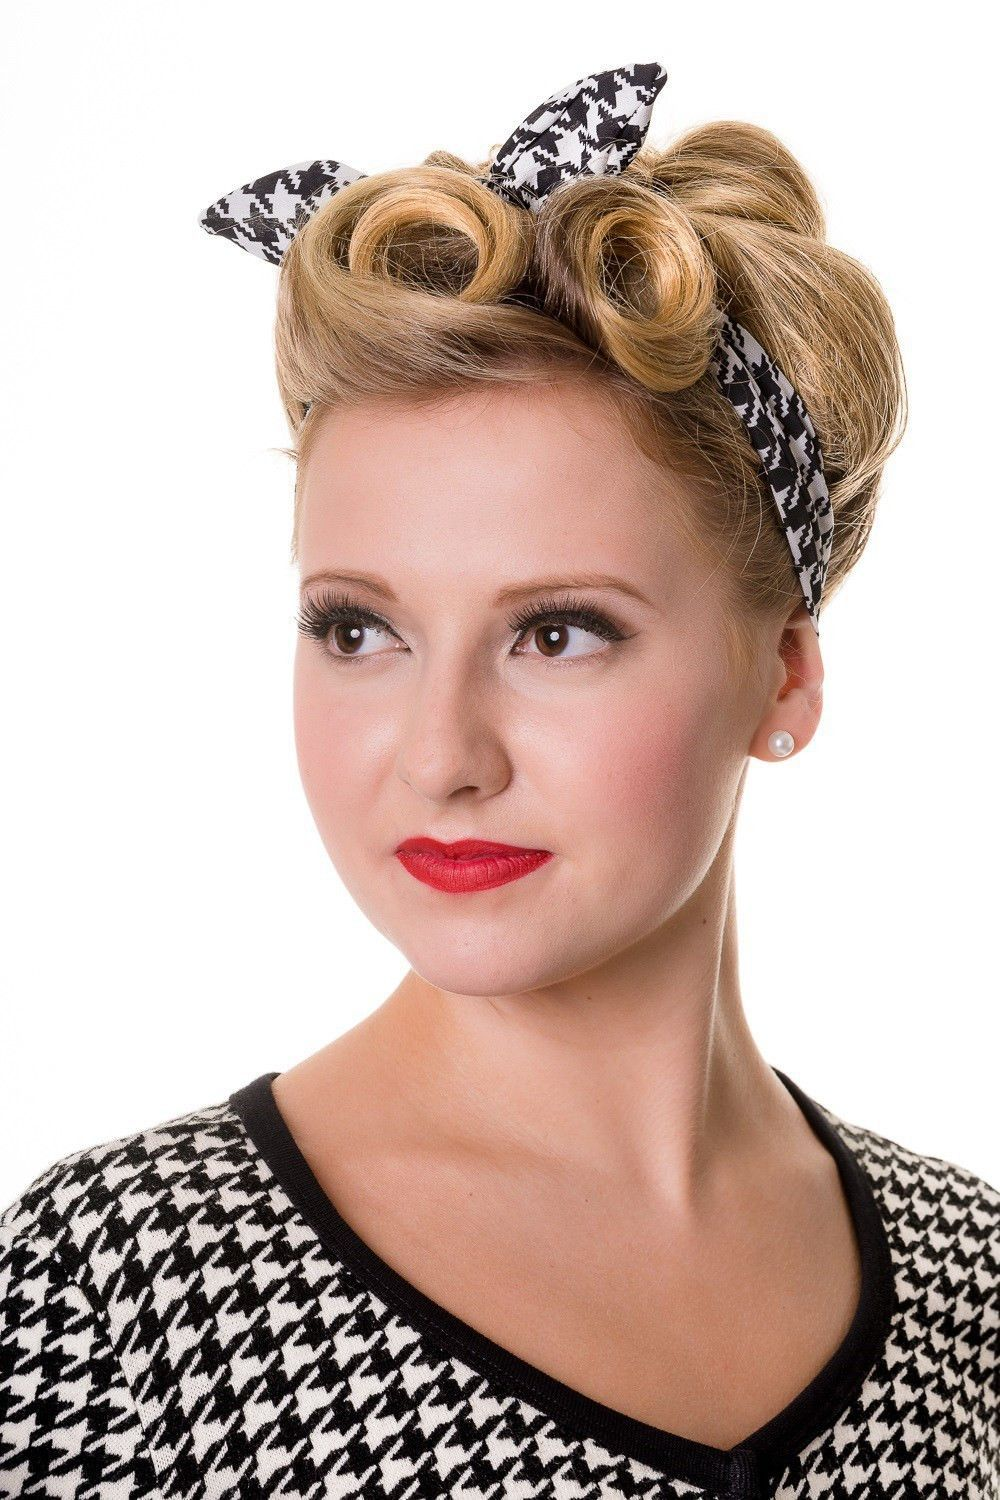 Retro 60 S Pinup Plaid And Houndstooth Pattern Elastic Campus Headband Peinados Retro Peinado Y Maquillaje Peinados